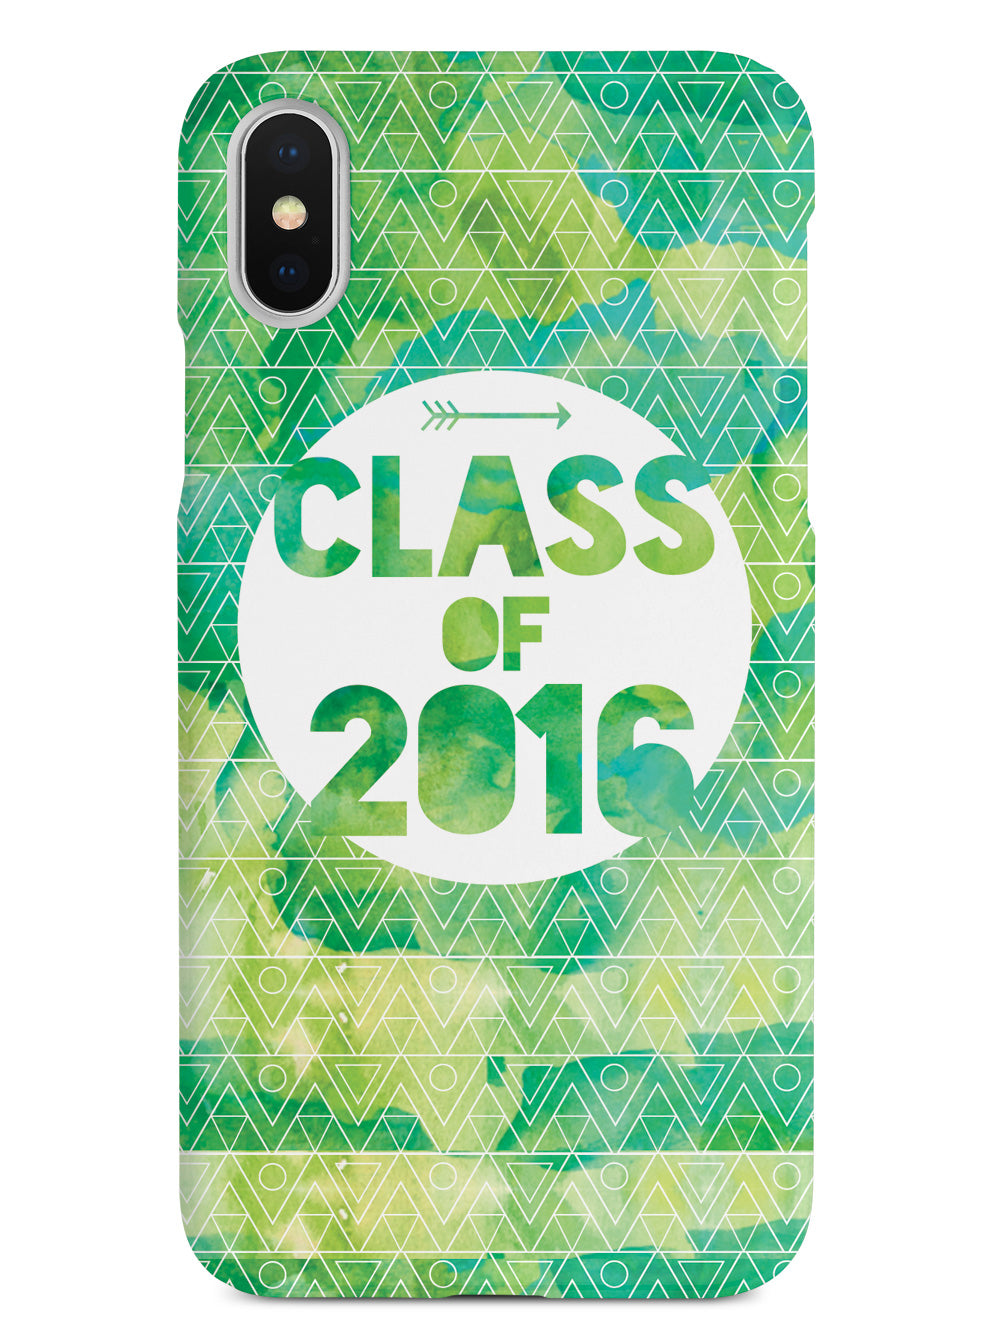 Class of 2016 - Green Watercolor Case